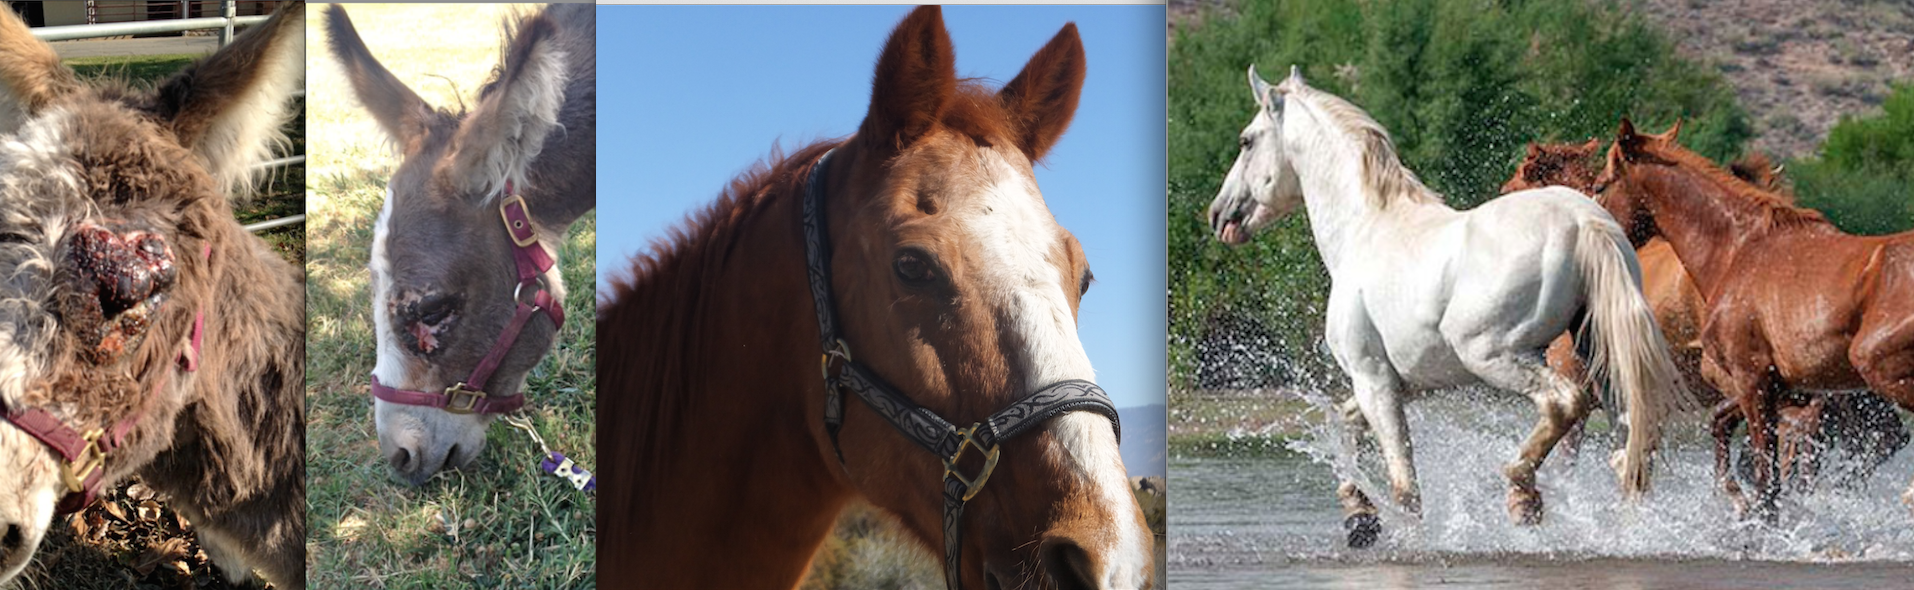 ALL THE LINKS WORK!  ALL FIXED (sorry!)  Our December Bucket Fund Horses!  Cinny the Ancient and Charming Gelding, Lila - the mini donk who survived sarcoid and the H&M Re-Wilding Program.  Click here to read all about these horses!   Gift donation Certificates available!